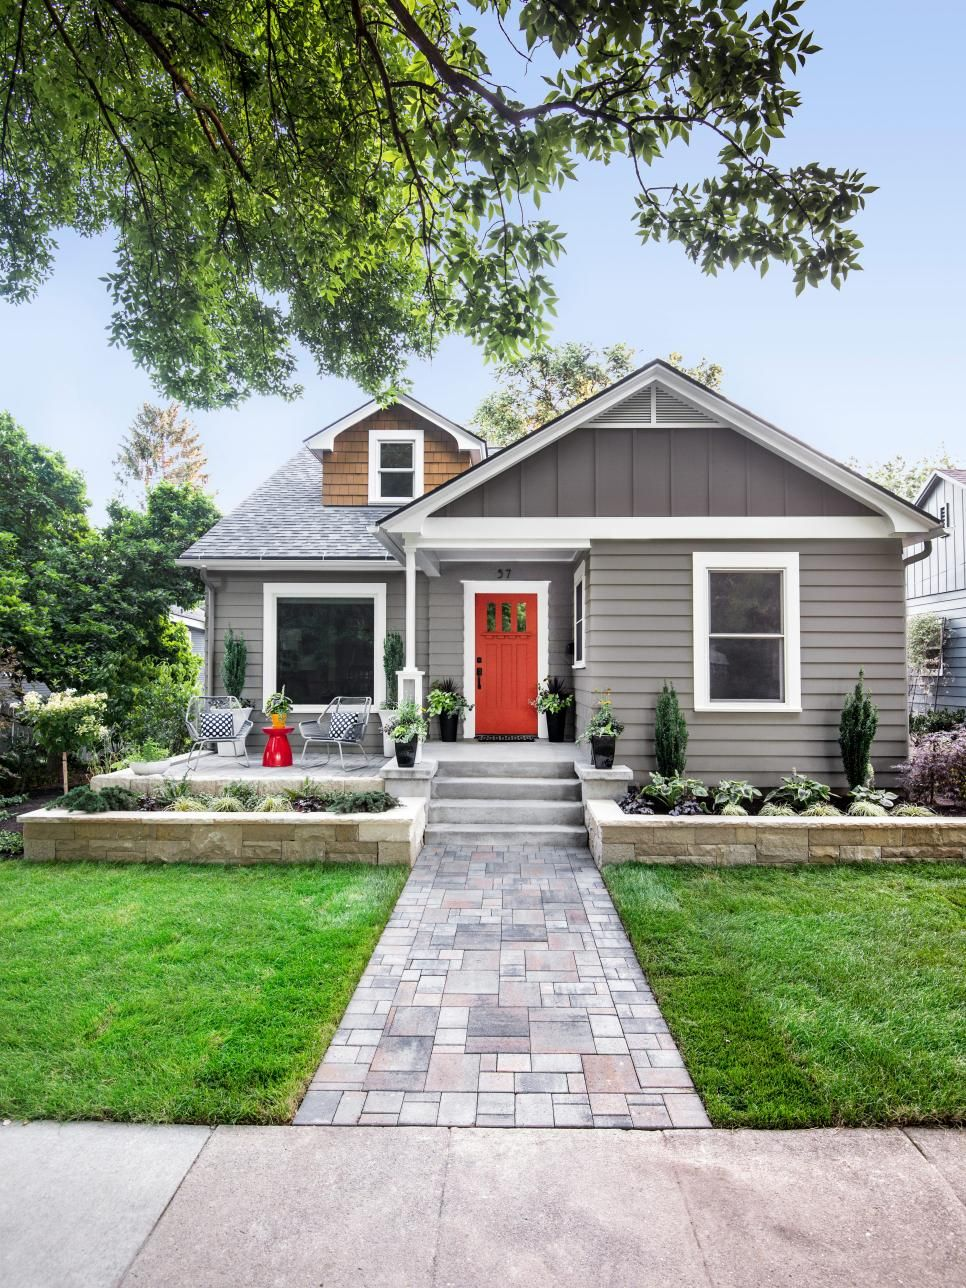 Copy These Curb Appeal Ideas From Greenville South Carolina Hgtv Home Exterior Makeover House Exterior House Paint Exterior